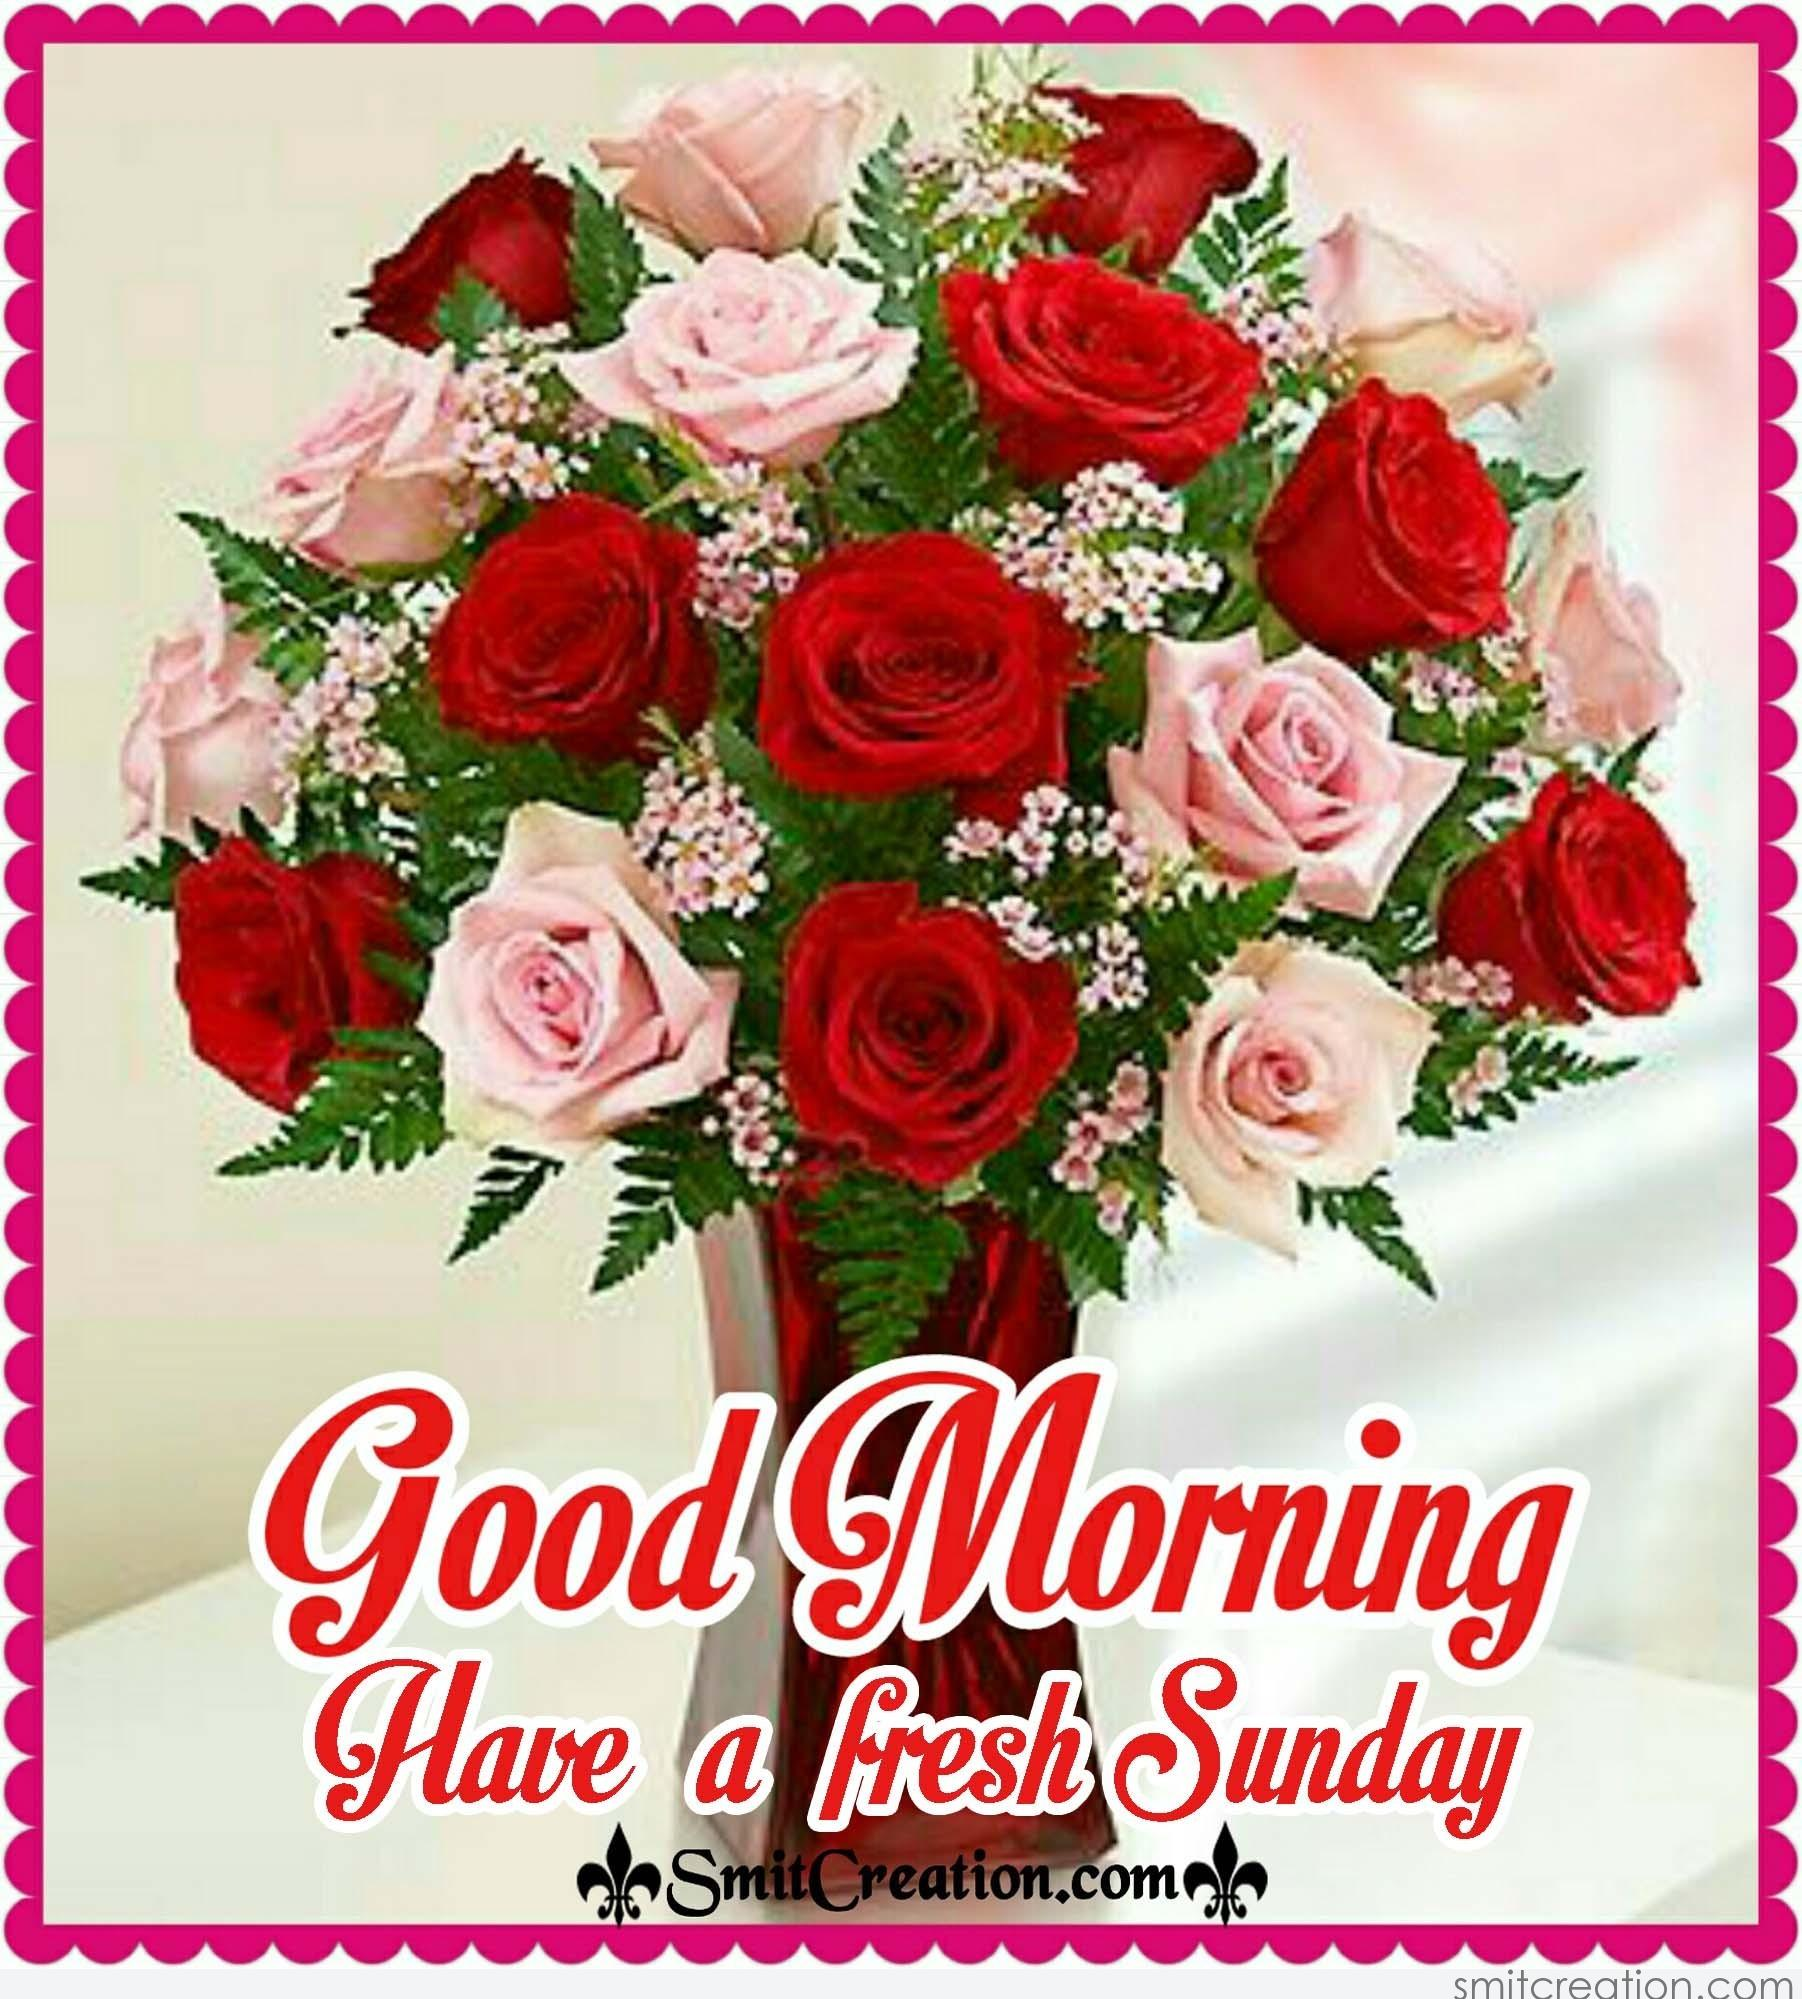 Good Morning Sunday Pick : Sunday pictures and graphics smitcreation page